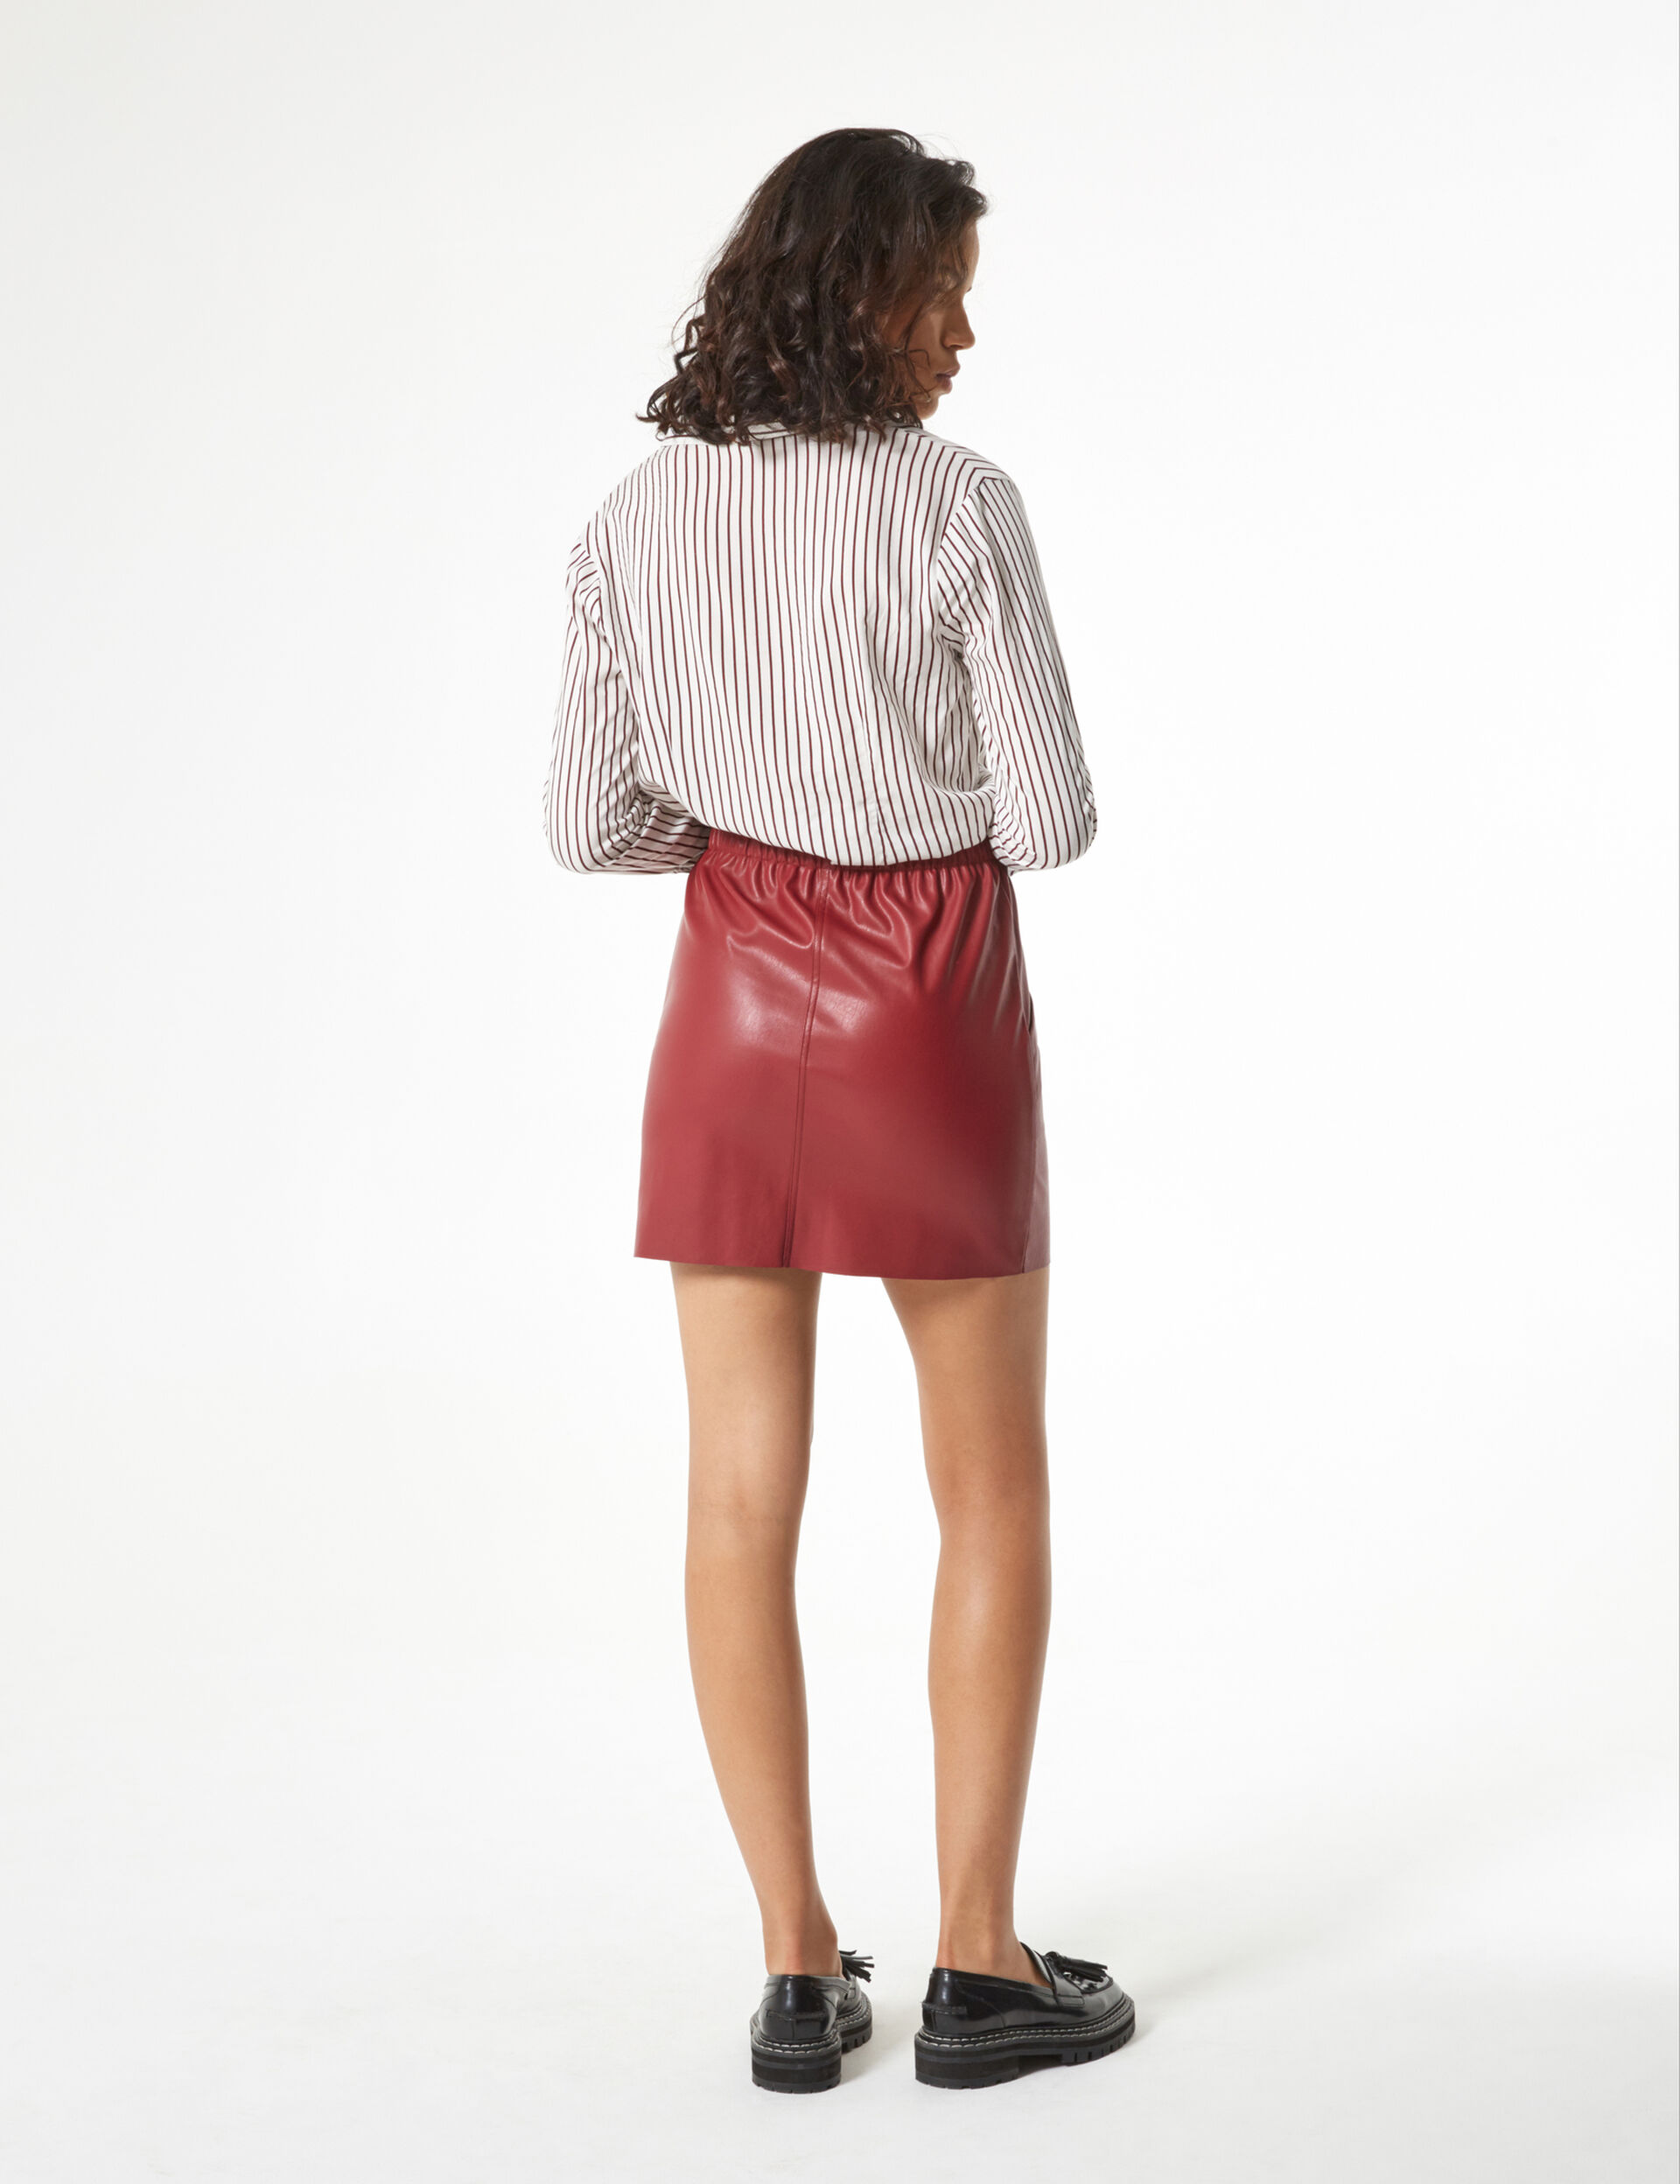 Faux leather skirt with pockets